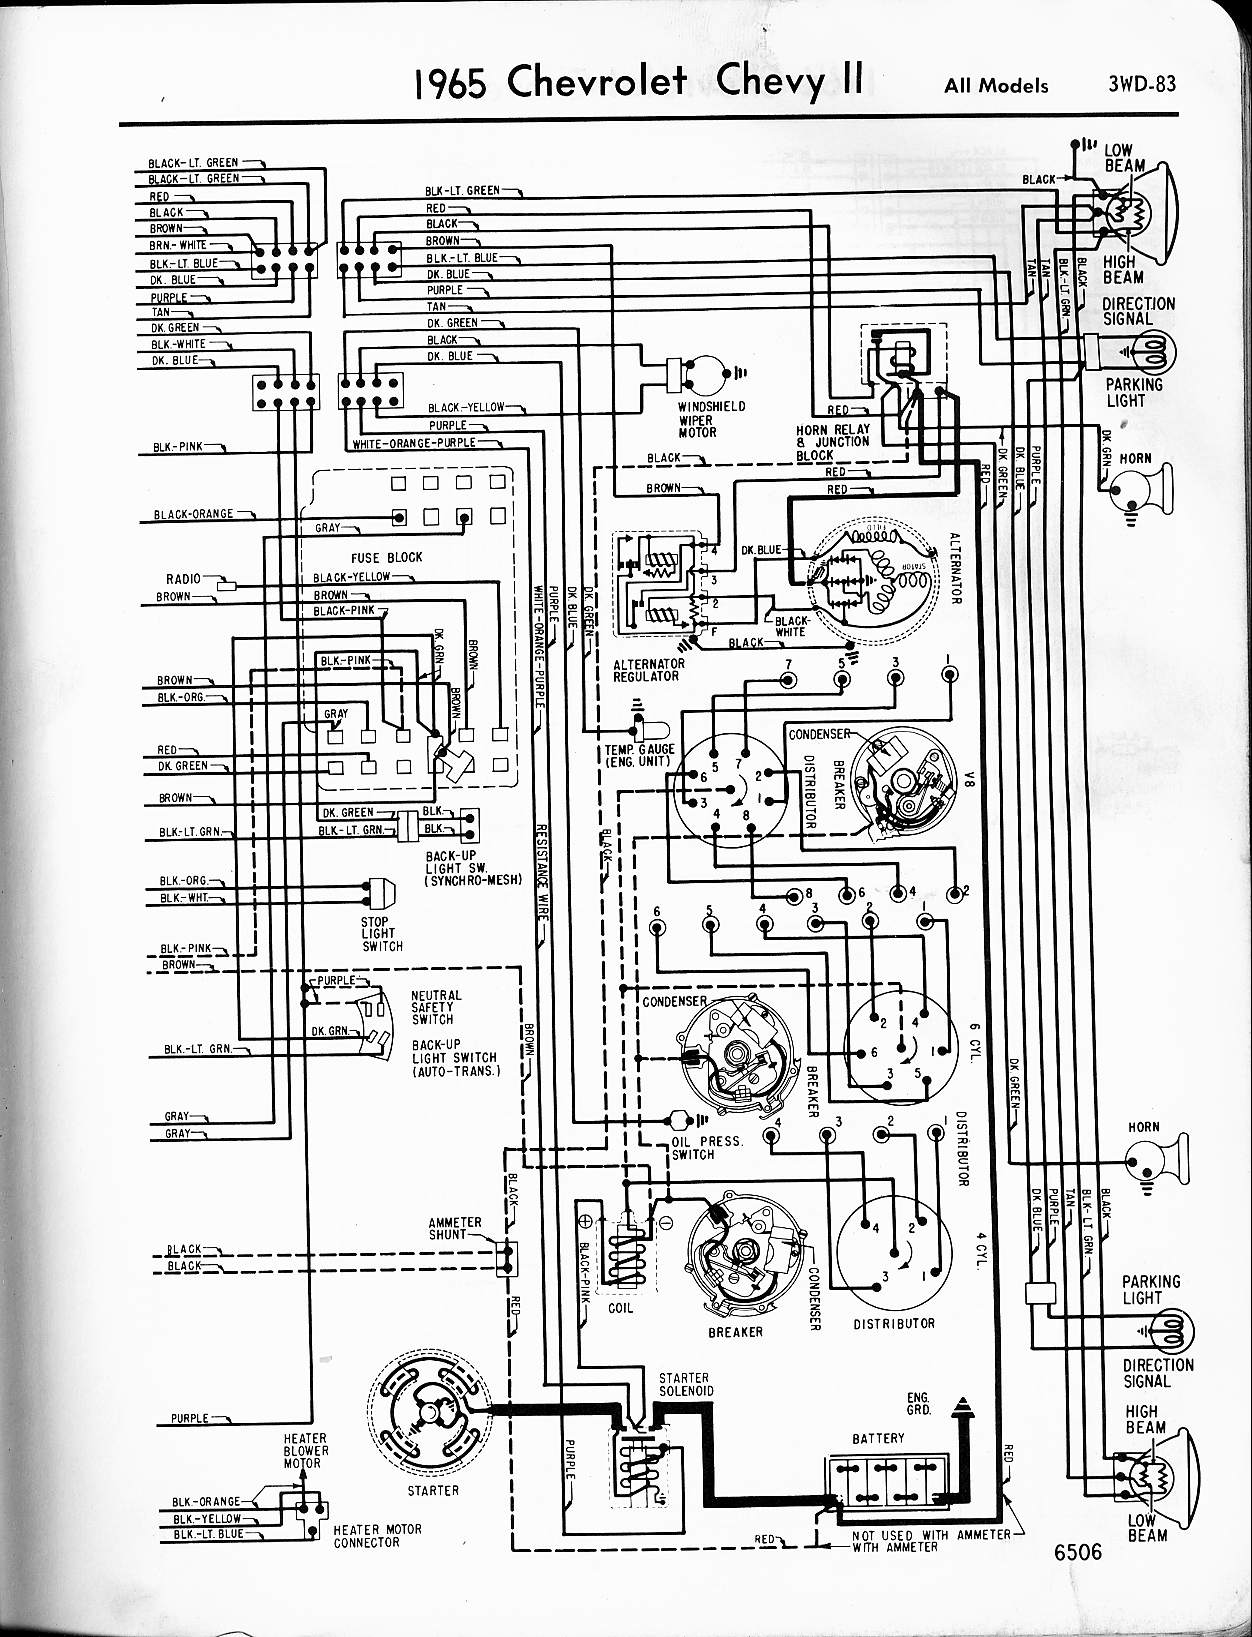 1965 Chevelle Wiring Diagram Reinvent Your 1964 Fairlane Manual Free Download Chevy Diagrams Rh Wizard Com Steering Column